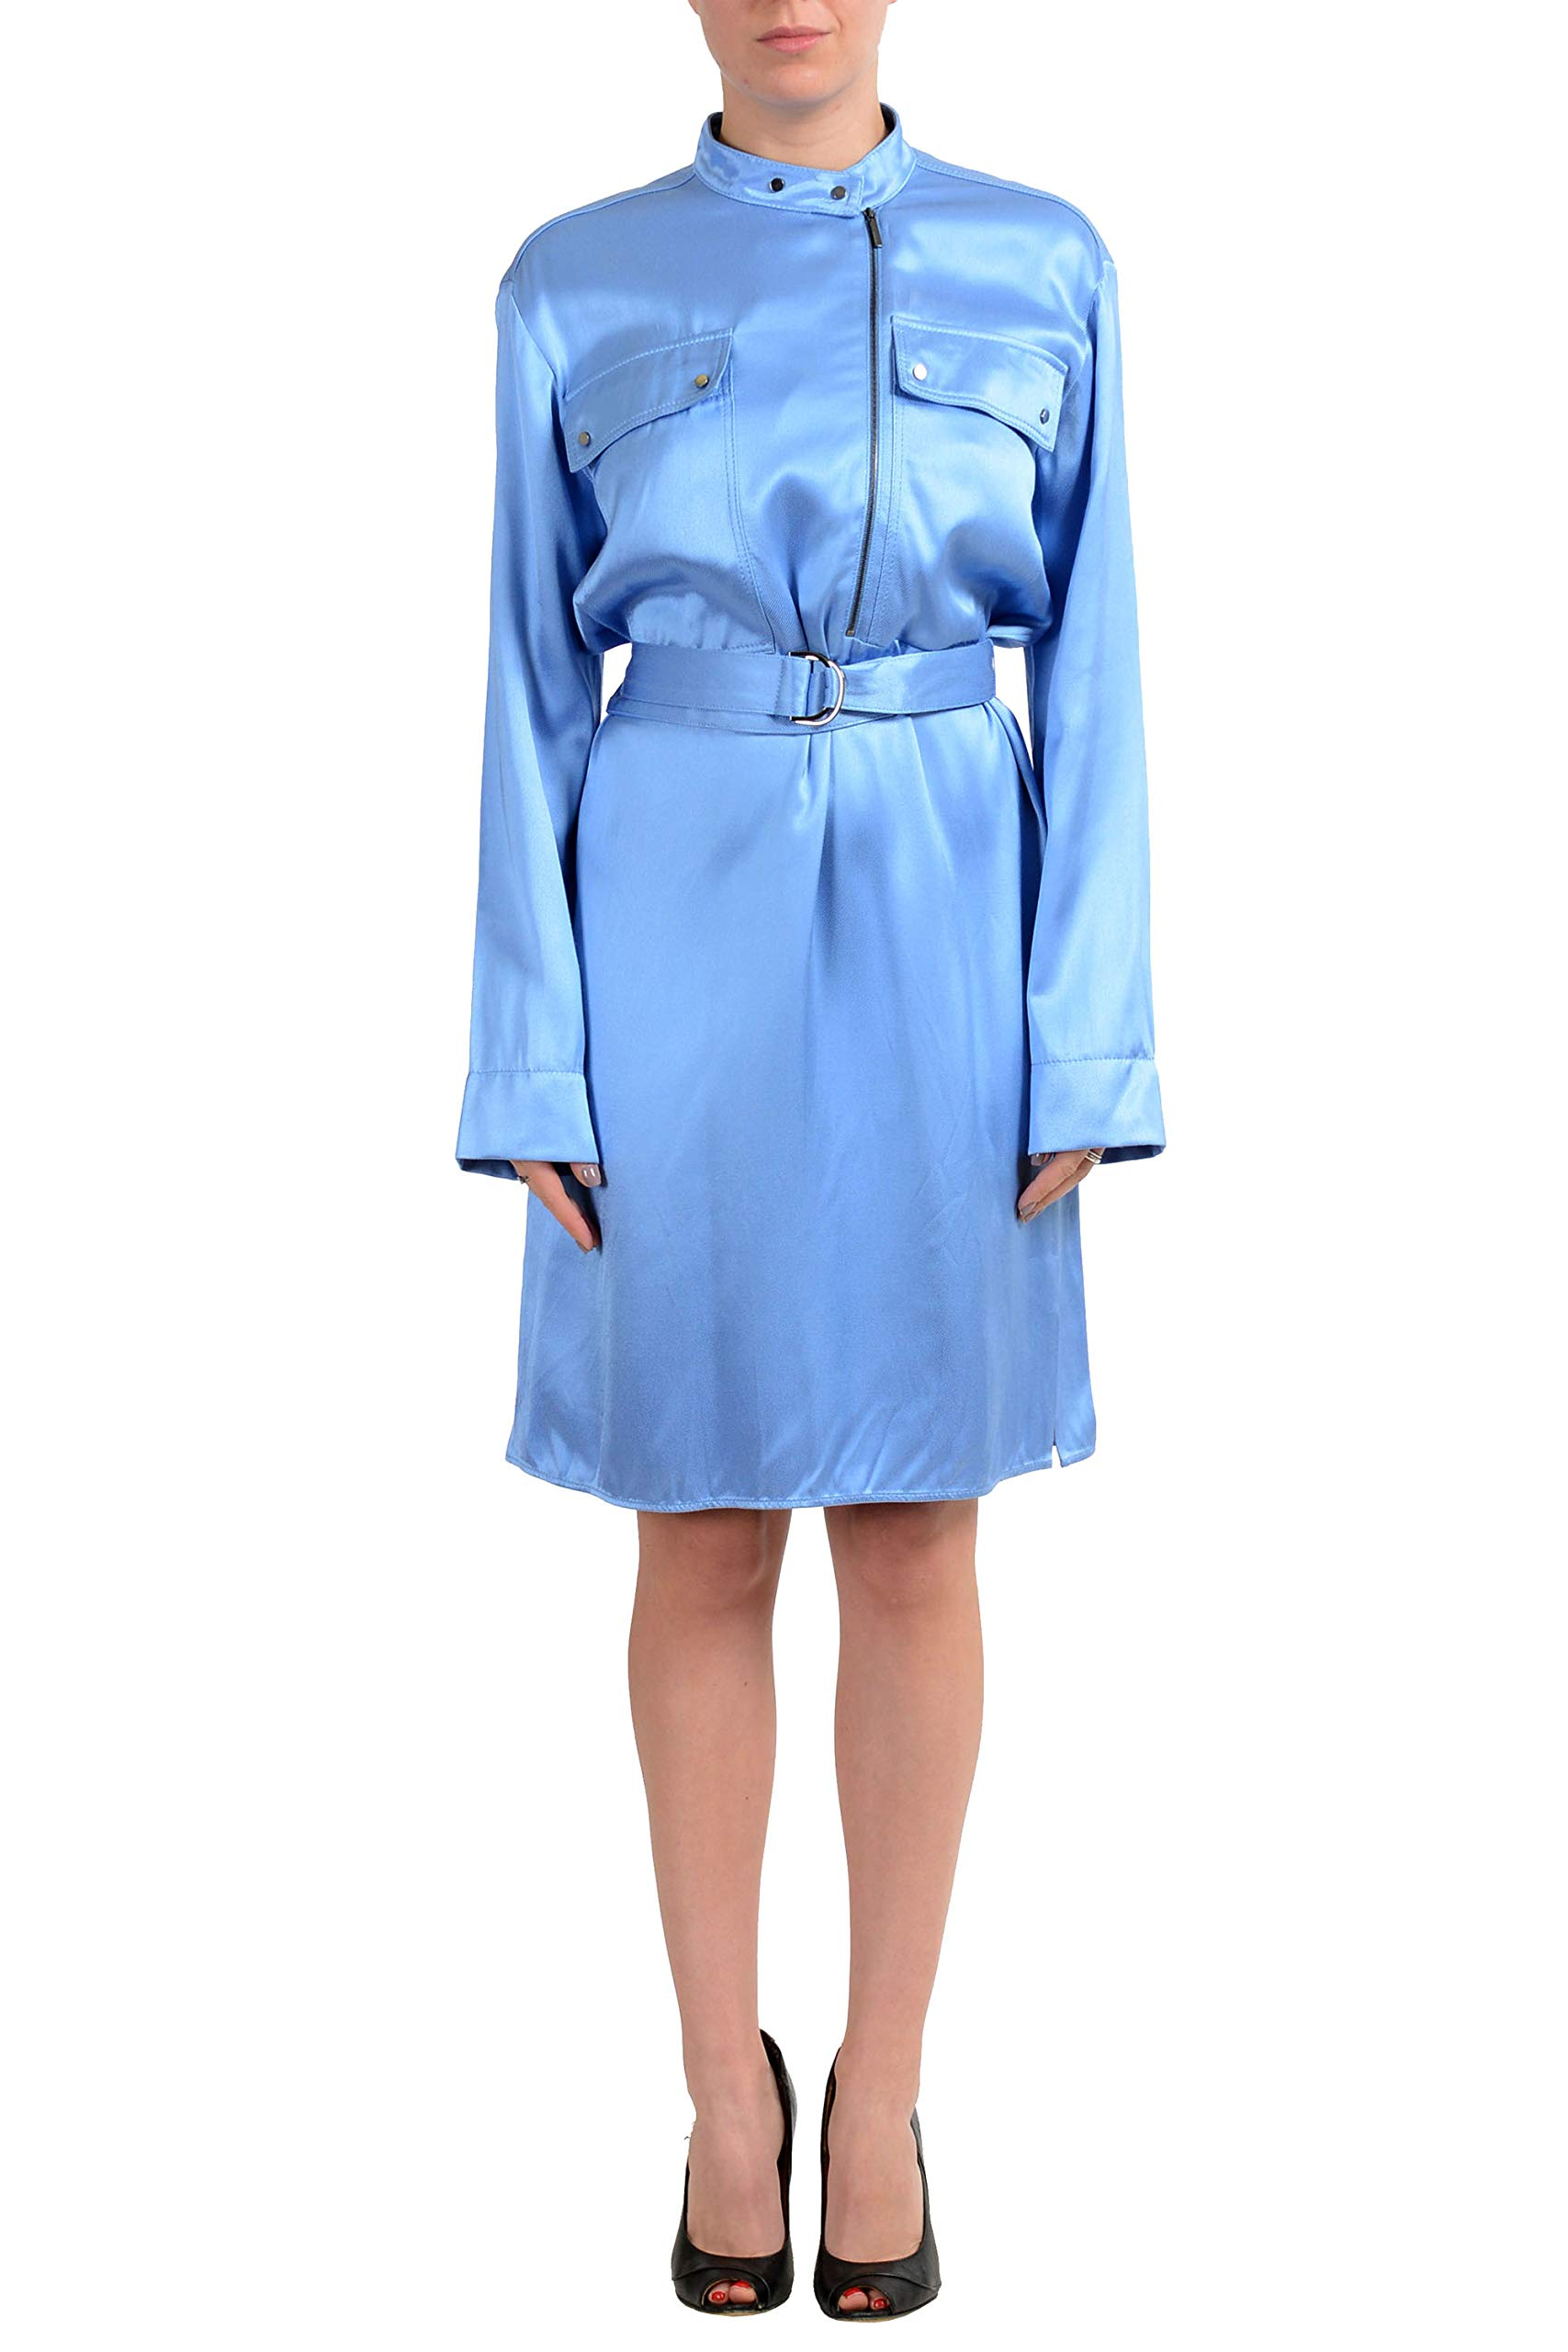 Available at Amazon: Hugo Boss Deikilia Women's Blue Long Sleeve Belted Dress US 4 IT 40